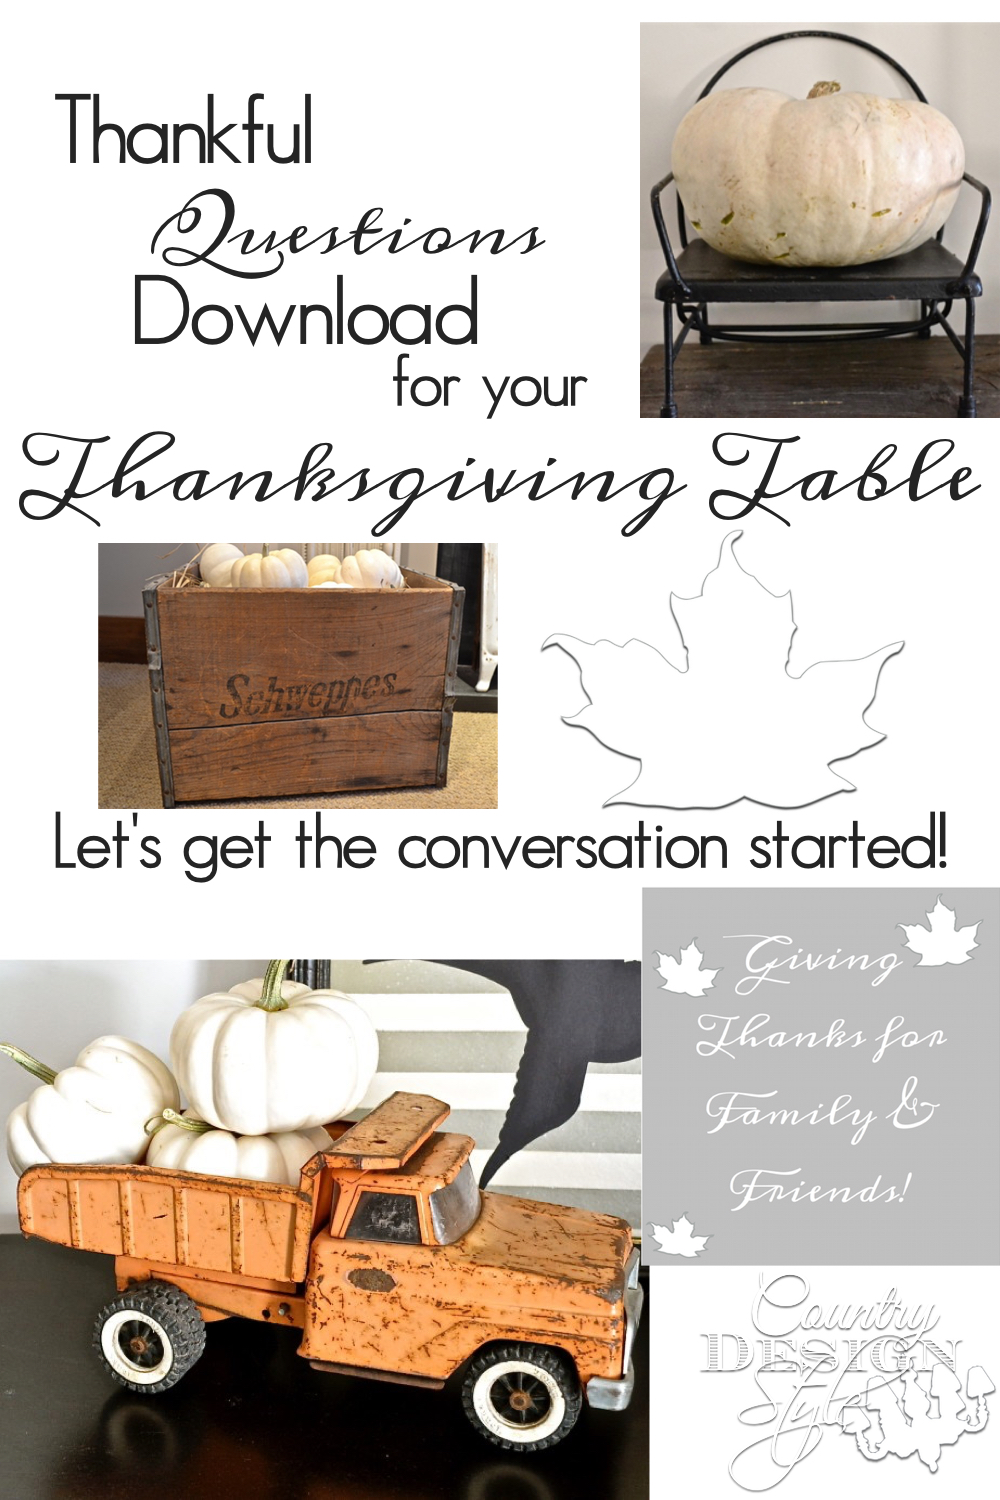 Thankful questions printable download available on the website. Let's get the conversation started! Perfect for all ages. Make them into napkin rings, tuck in a napkin, tie on a Thanksgiving tree   countrydesignstyle.com